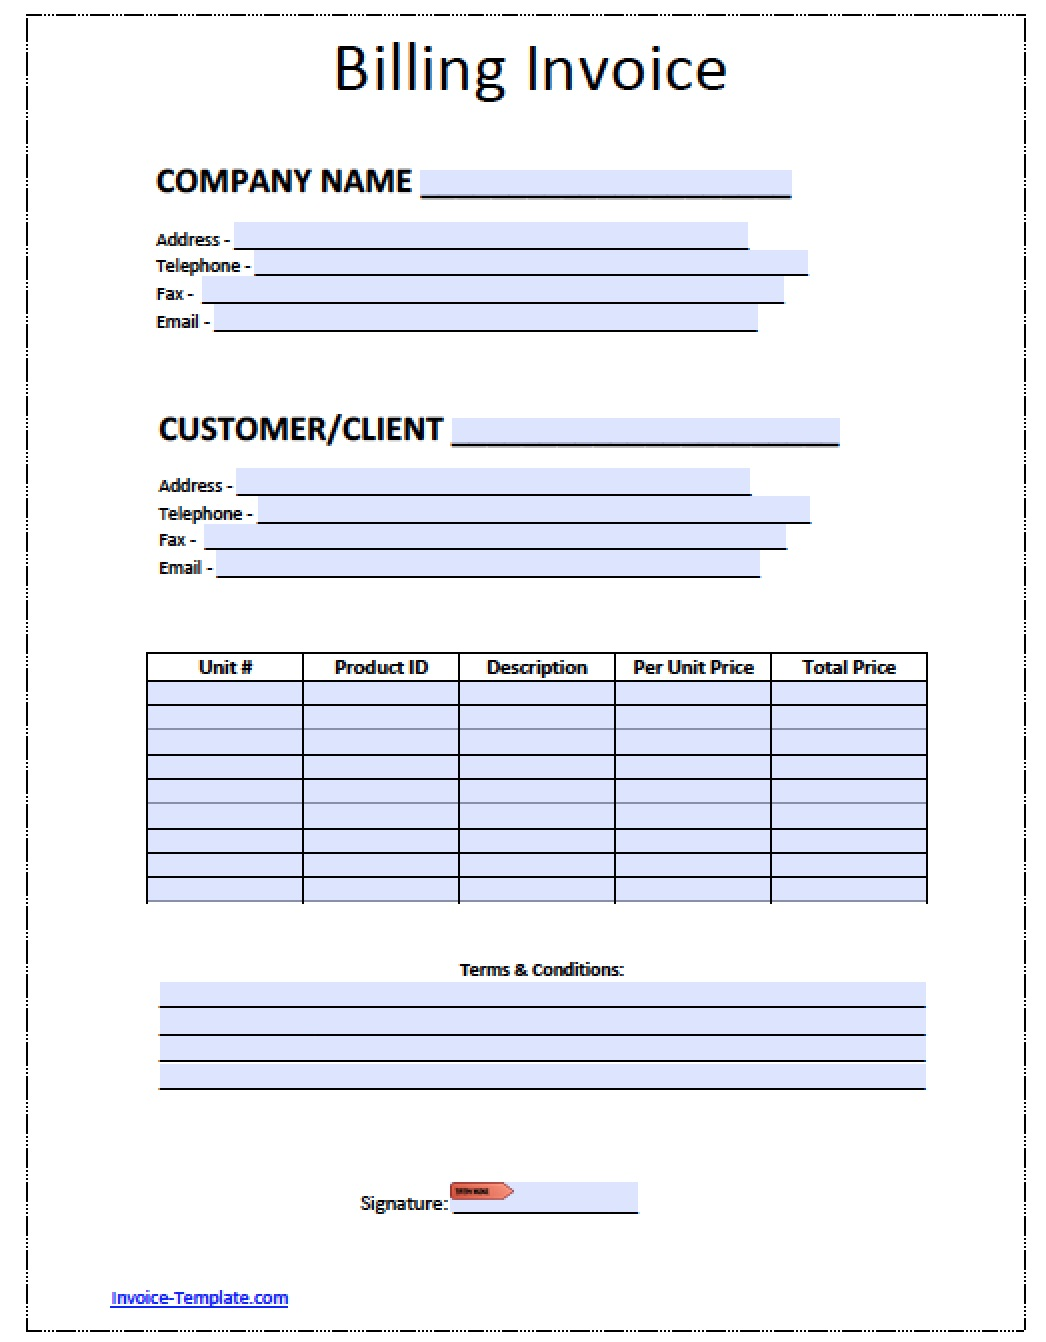 billing invoice template excel pdf word doc